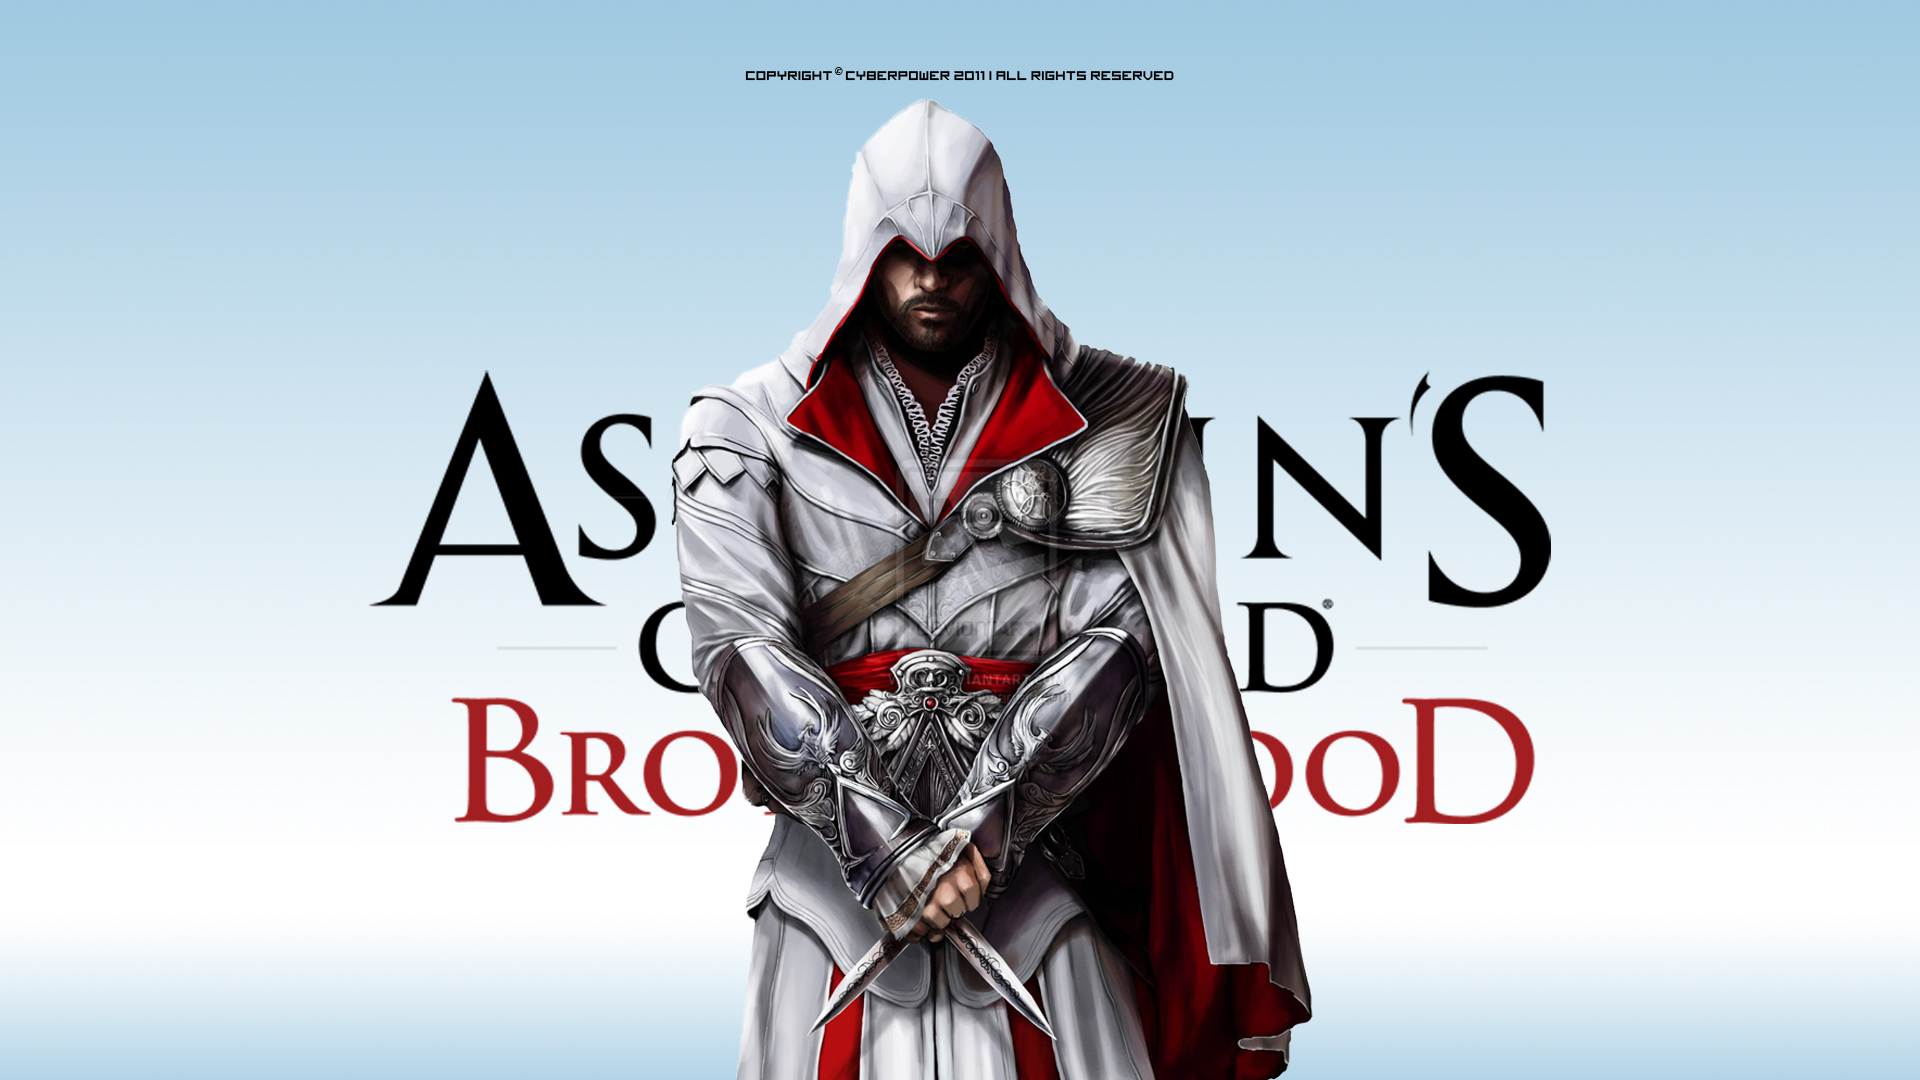 Video Game - Assassin's Creed: Brotherhood   - Ezio - Auditore - Assassins - Brotherhood - Cyberpower - Epic - Blue - Hd - 1080p - Cool - Awesome - Wallpaper Wallpaper